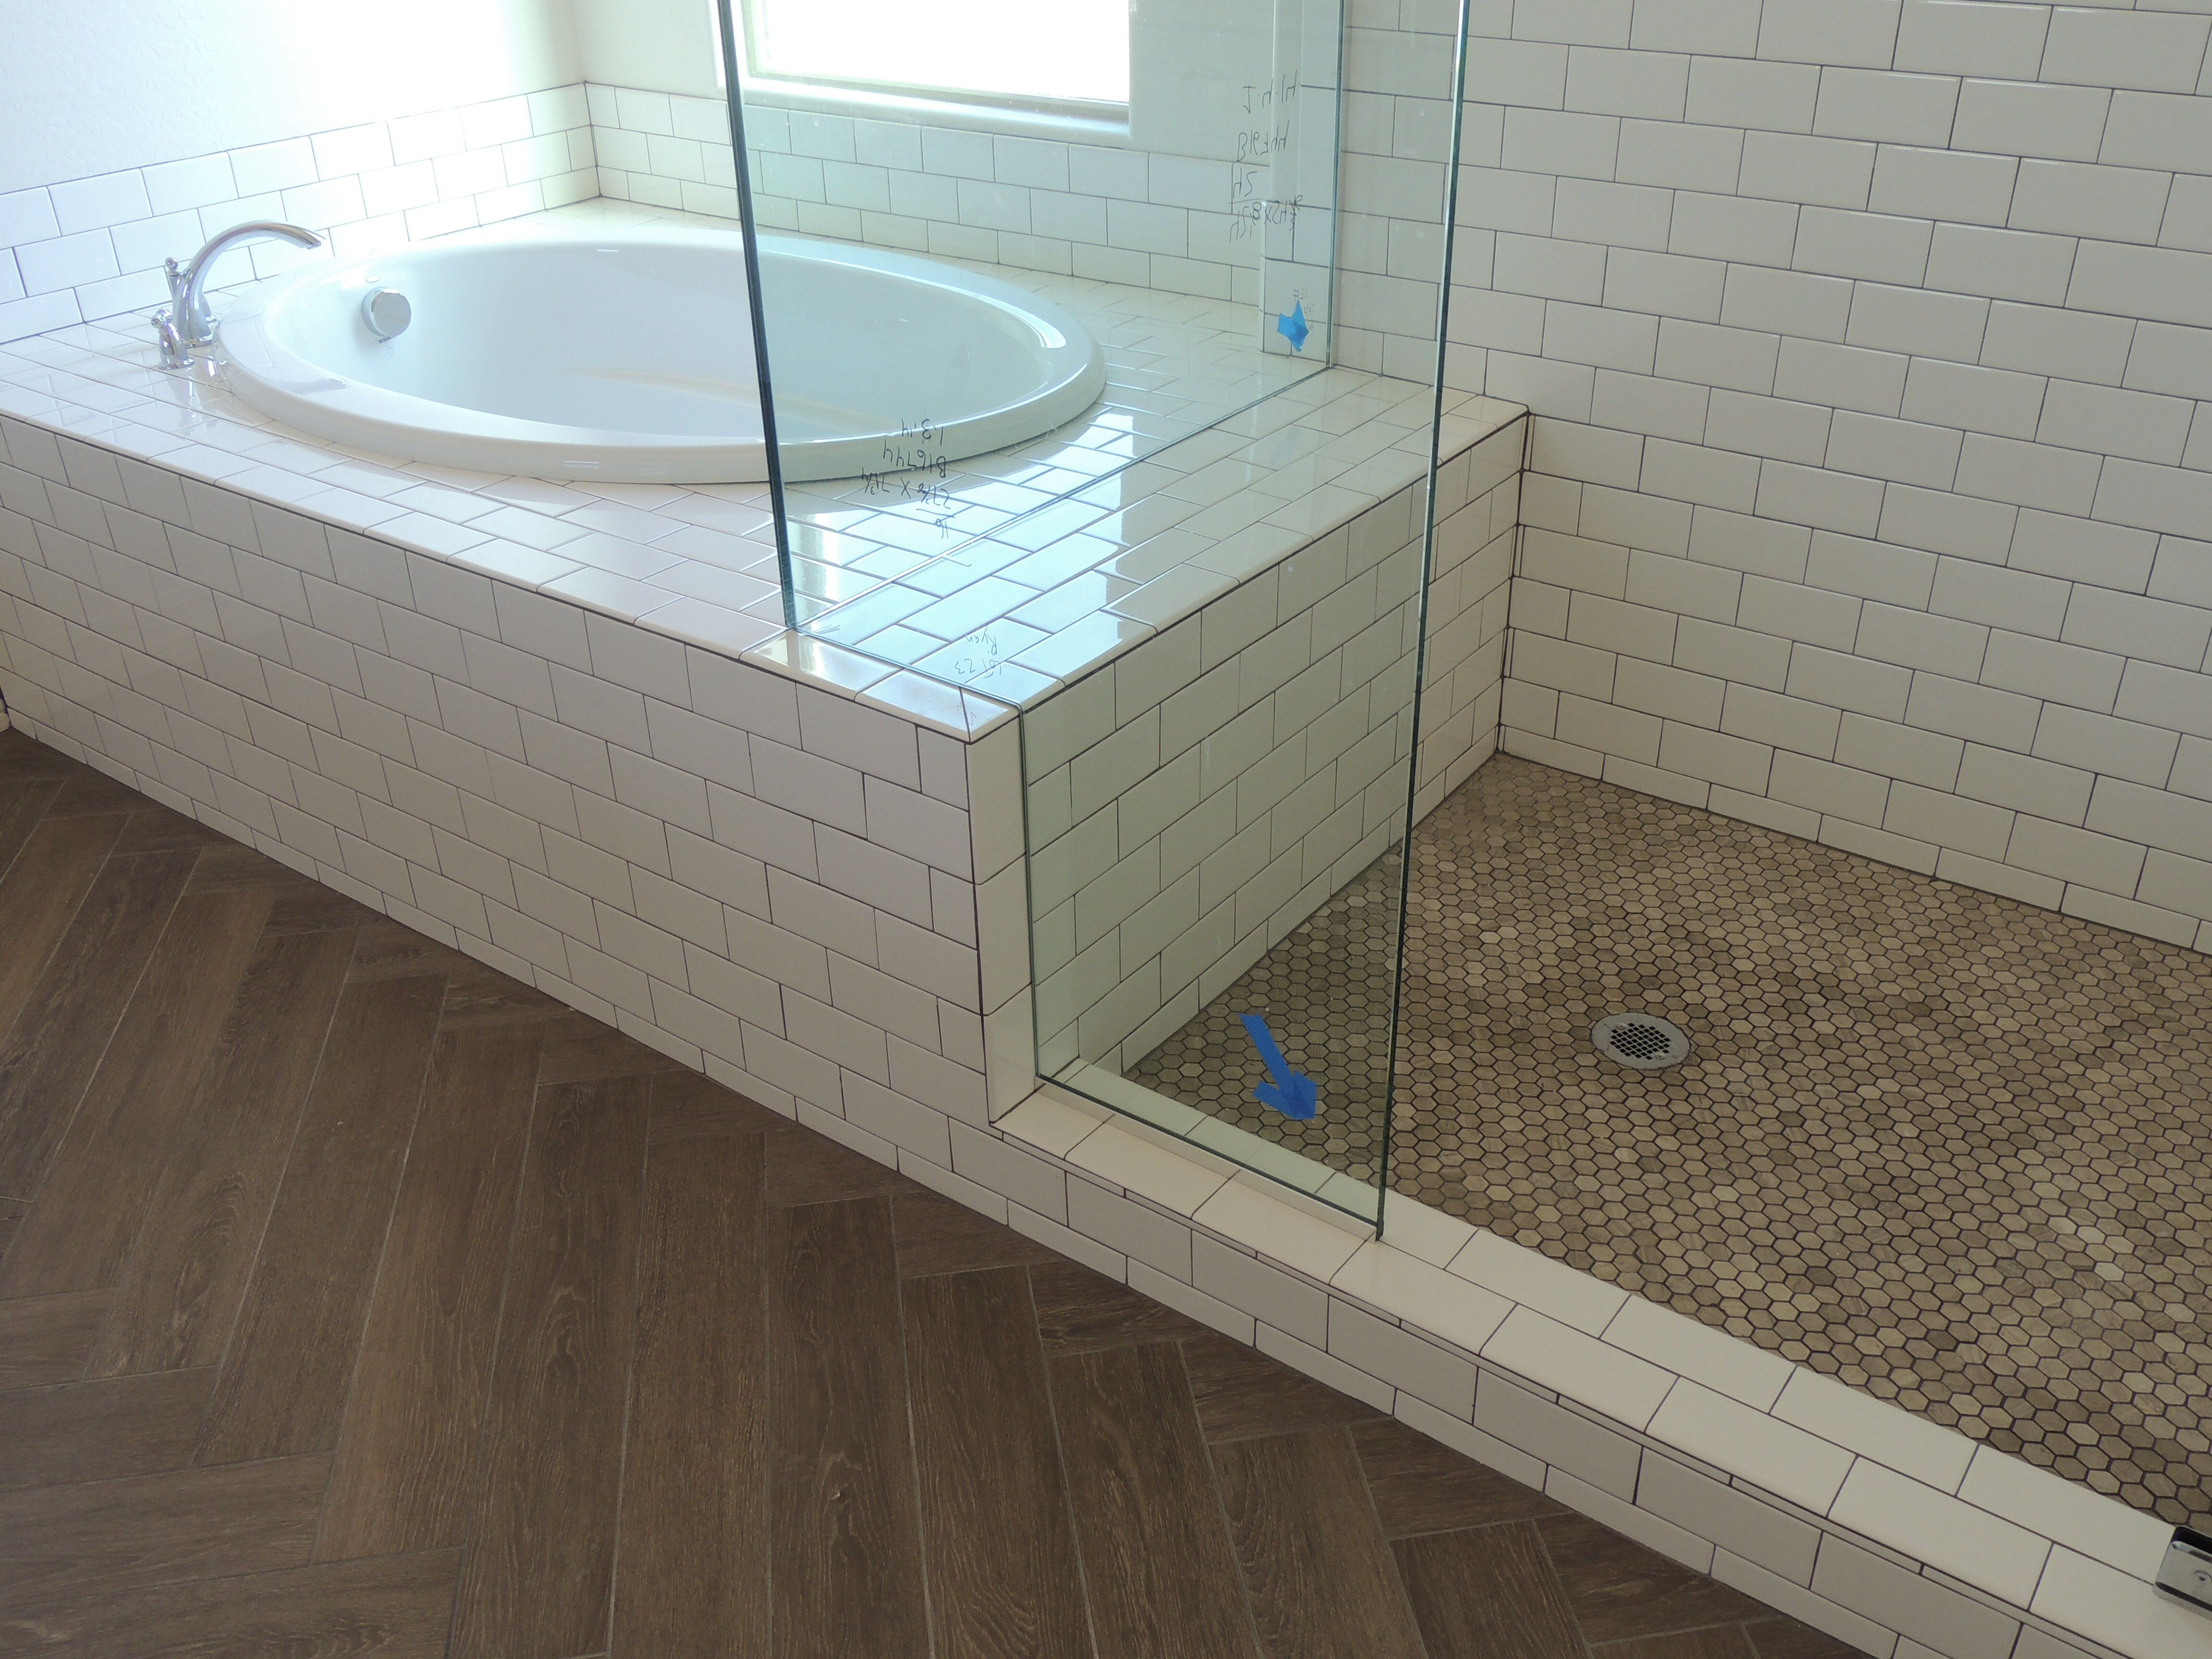 Chevron Herringbone Faux Wood Floor Tile Brown Gray White Subway Tub And Shower Surround